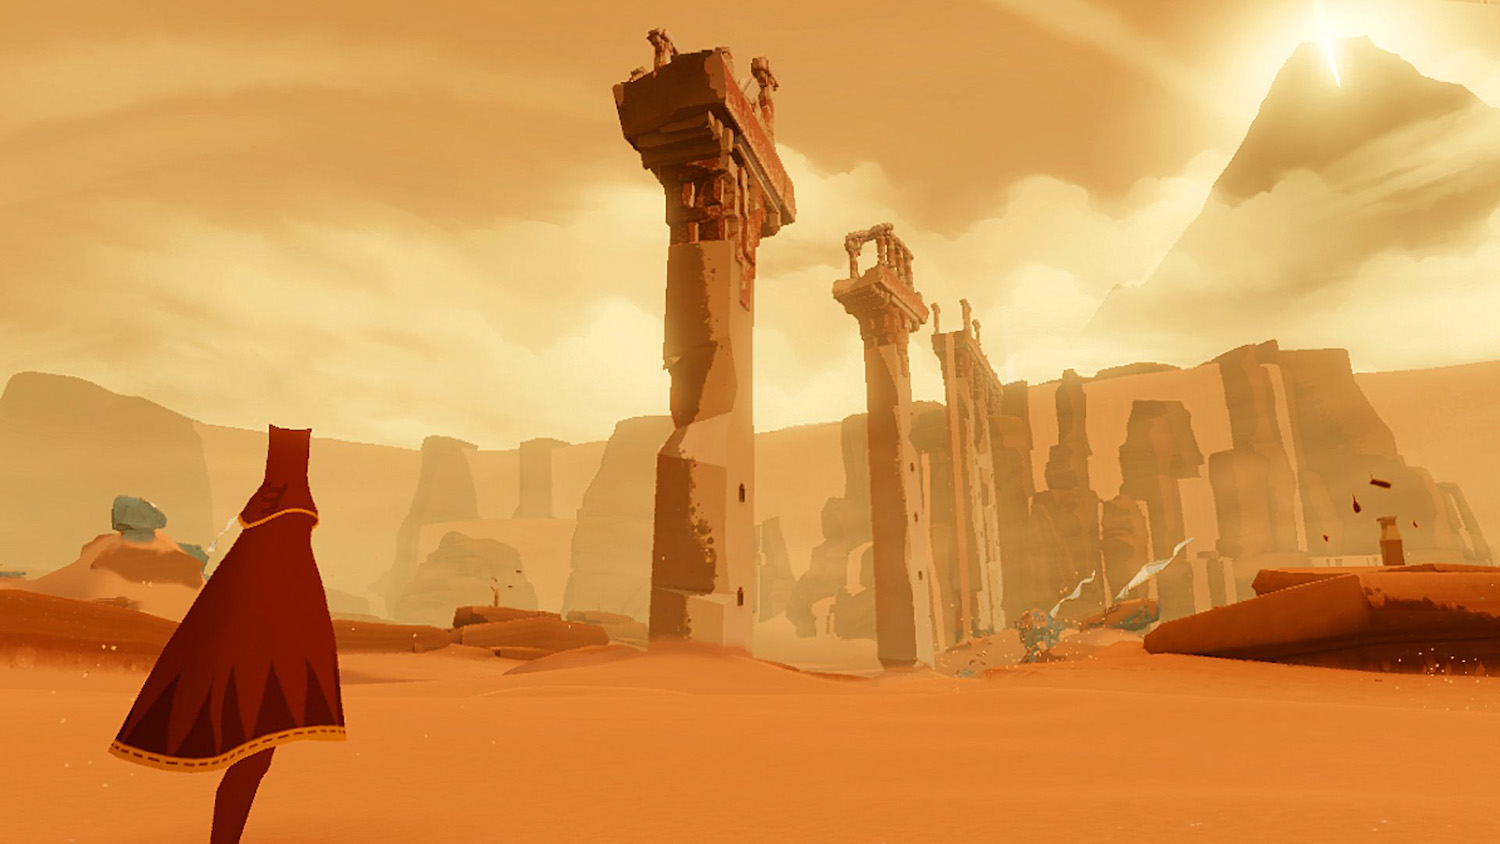 2012_Journey_A4345_thatgamecompany_Still_002_ltr